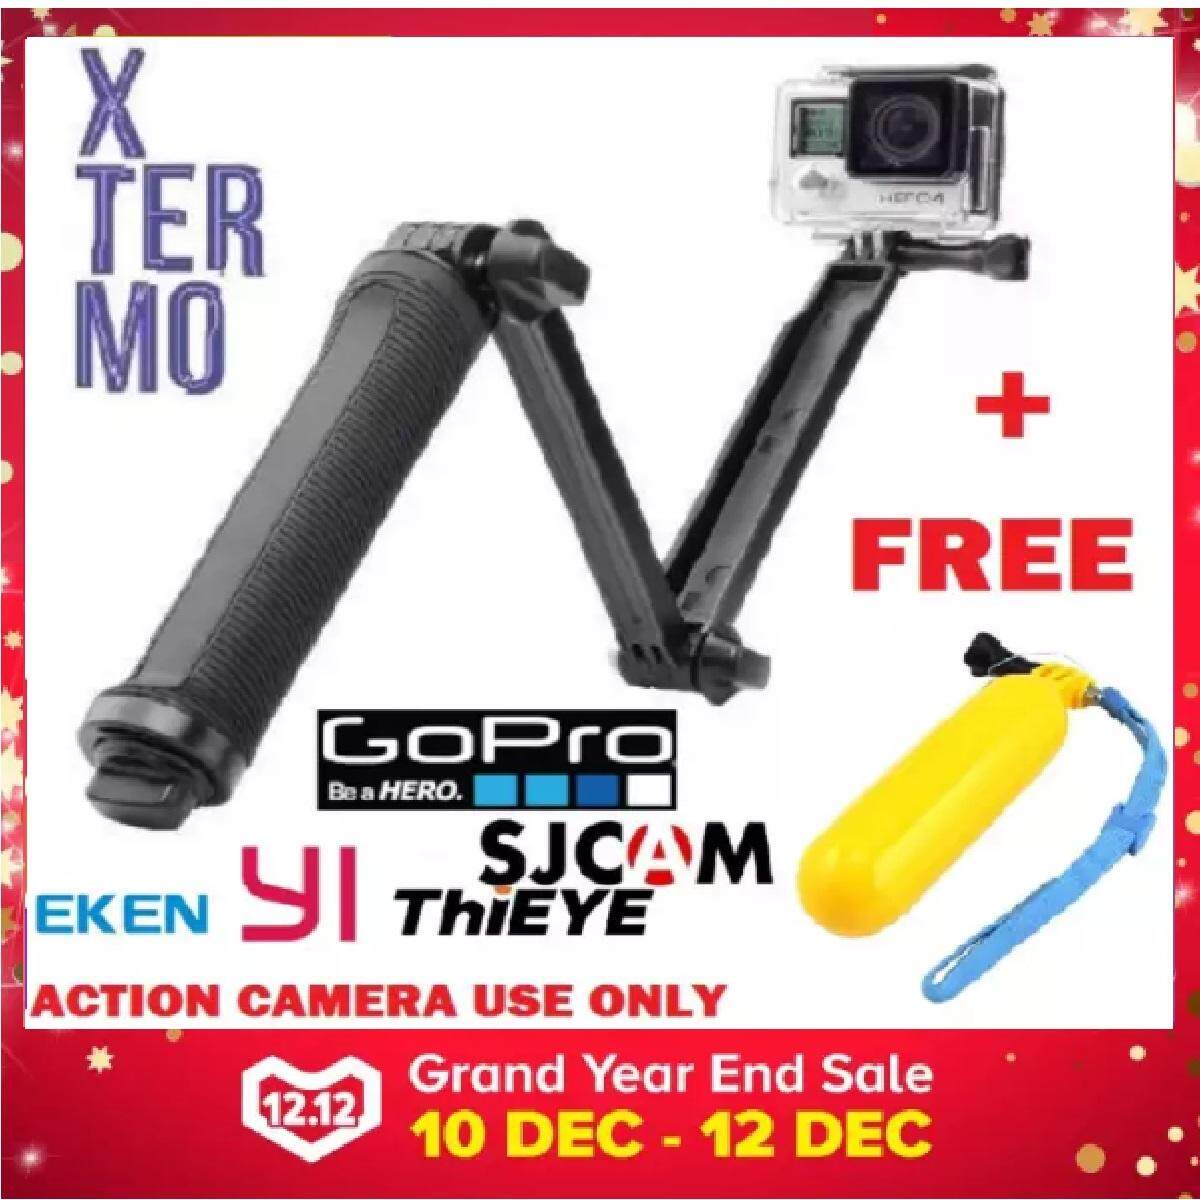 Xtermo 3 Way Extendable Monopod Pole With Tripod Adapter For Gopro Hero 6 5 4 Sjcam Eken Xiaoyi Goq F60r Thieye Action Camera With Tripod Stand Portable Handheld - Black By Atcetera Solutions.